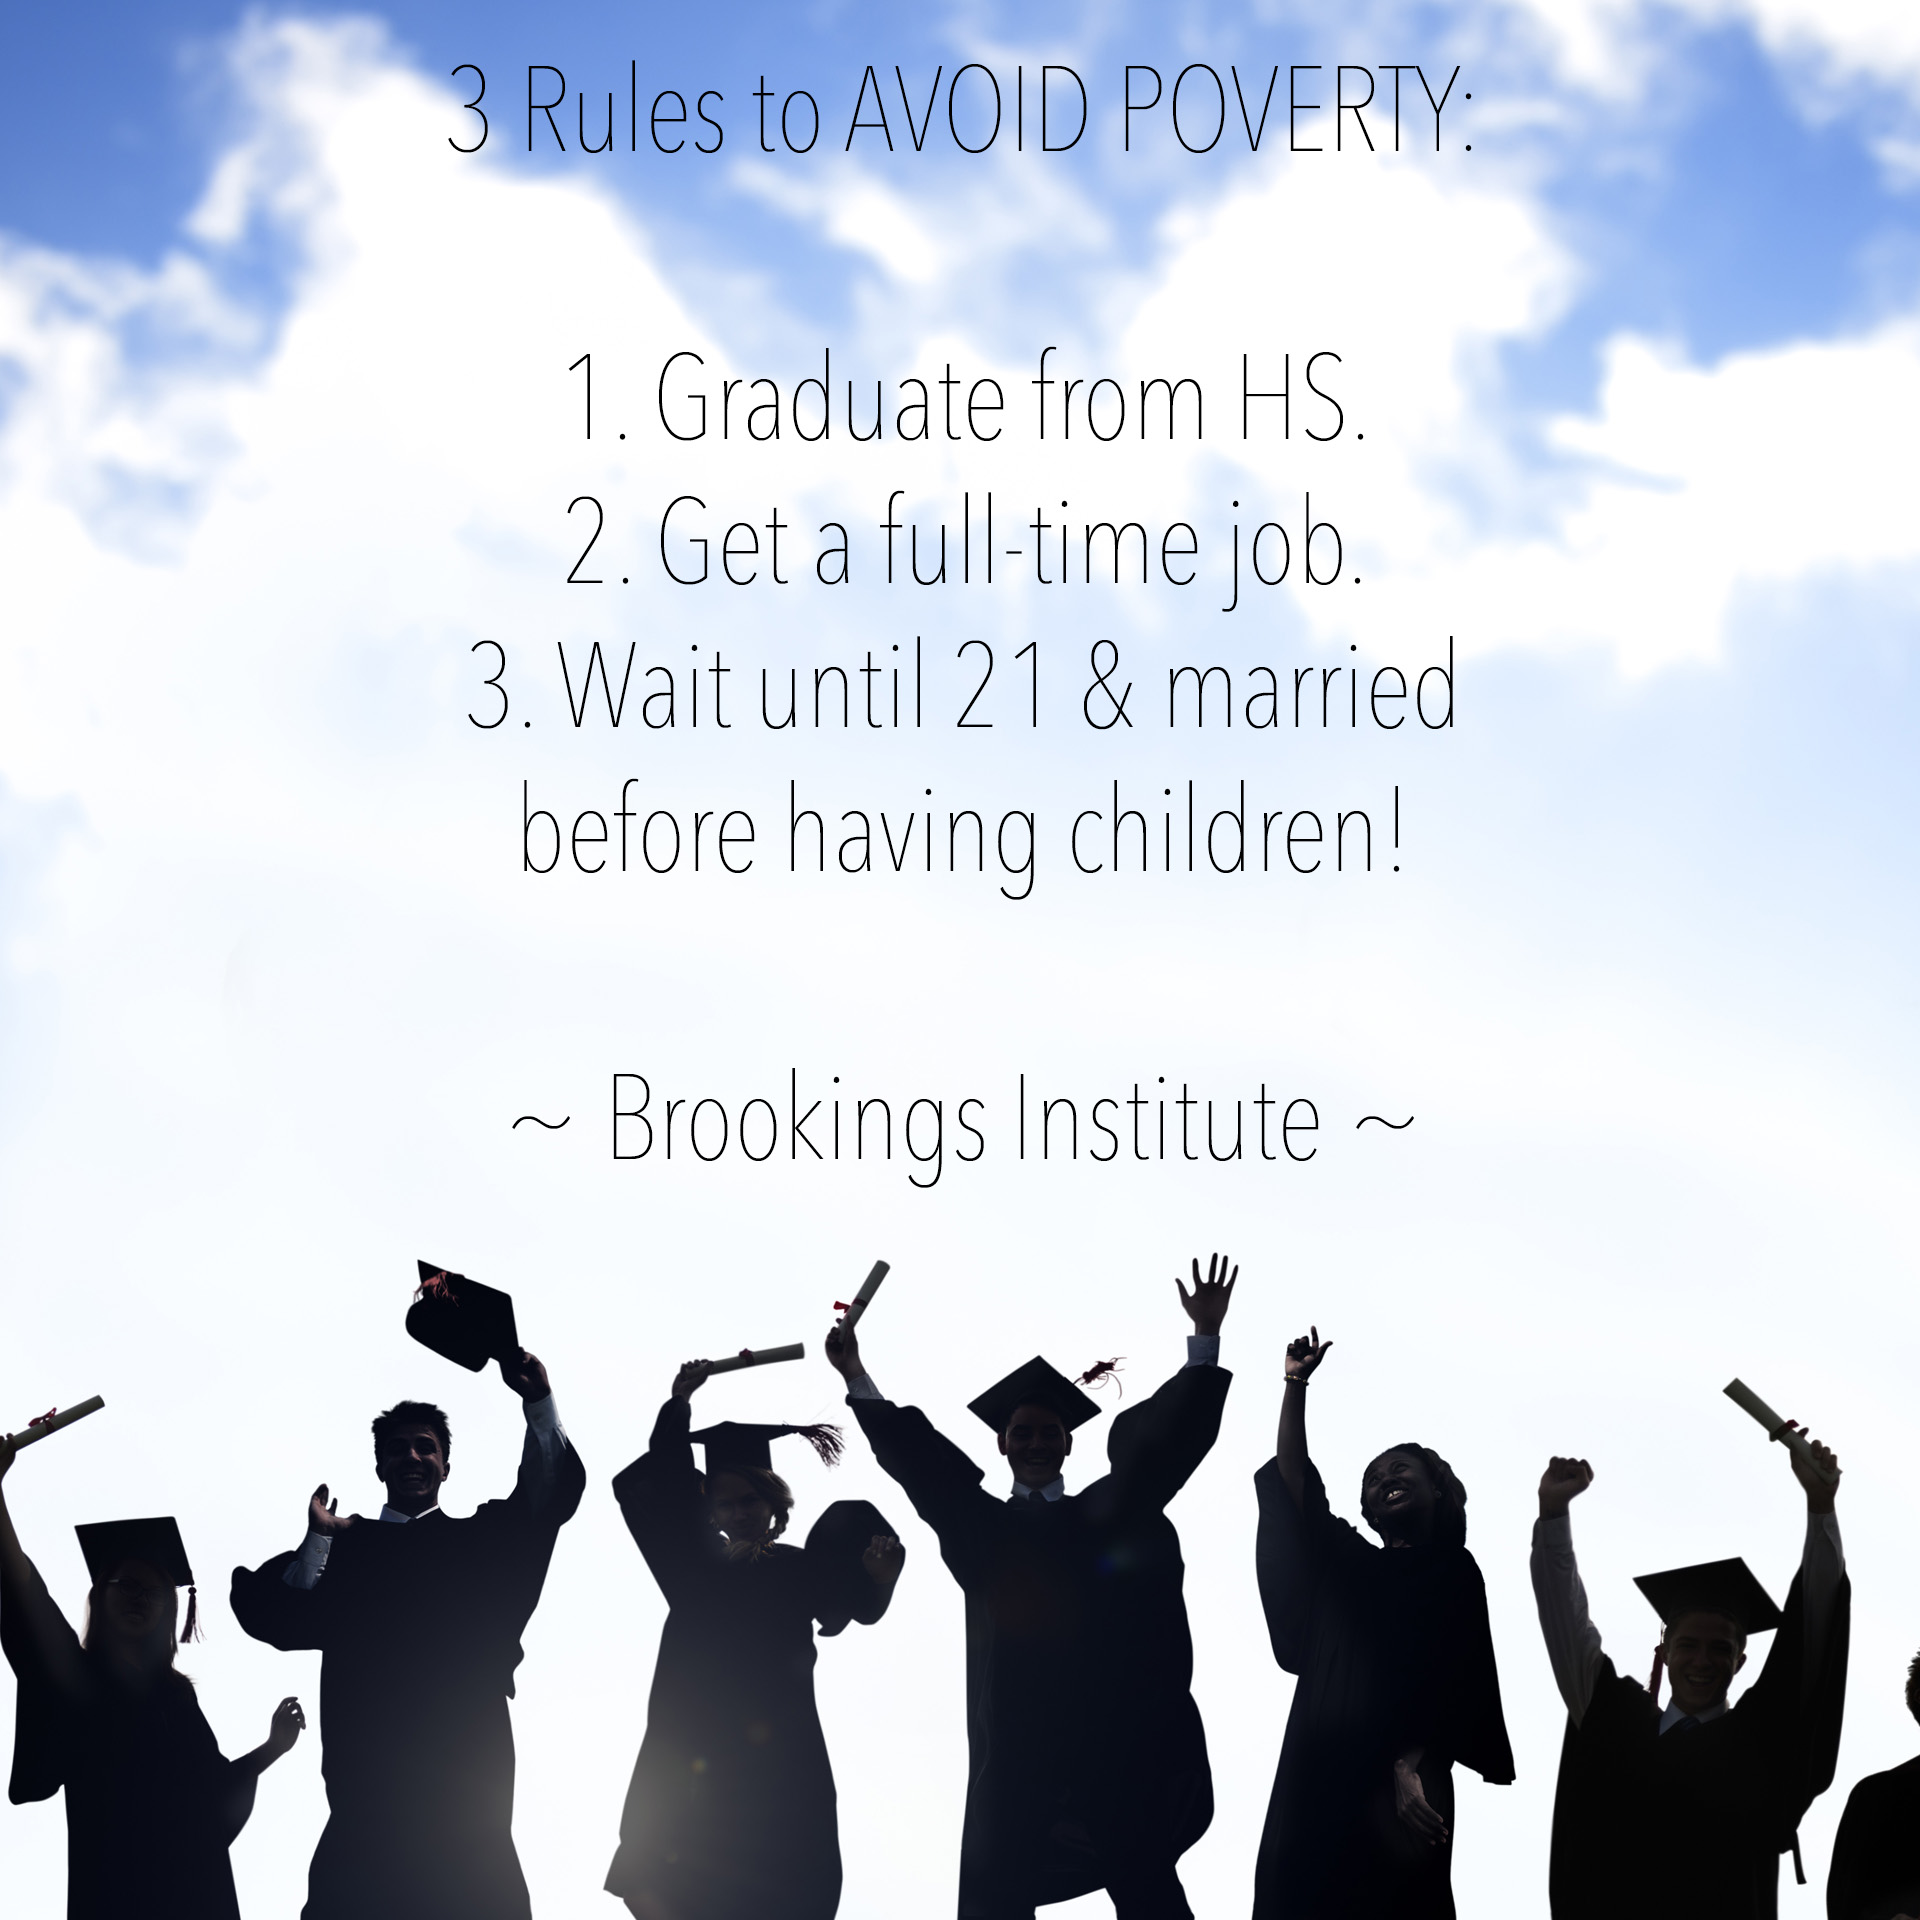 3 Rules to AVOID POVERTY: 1. Graduate from HS. 2. Get a full-time job. 3. Wait until 21 & married before having children! - Brookings Institute